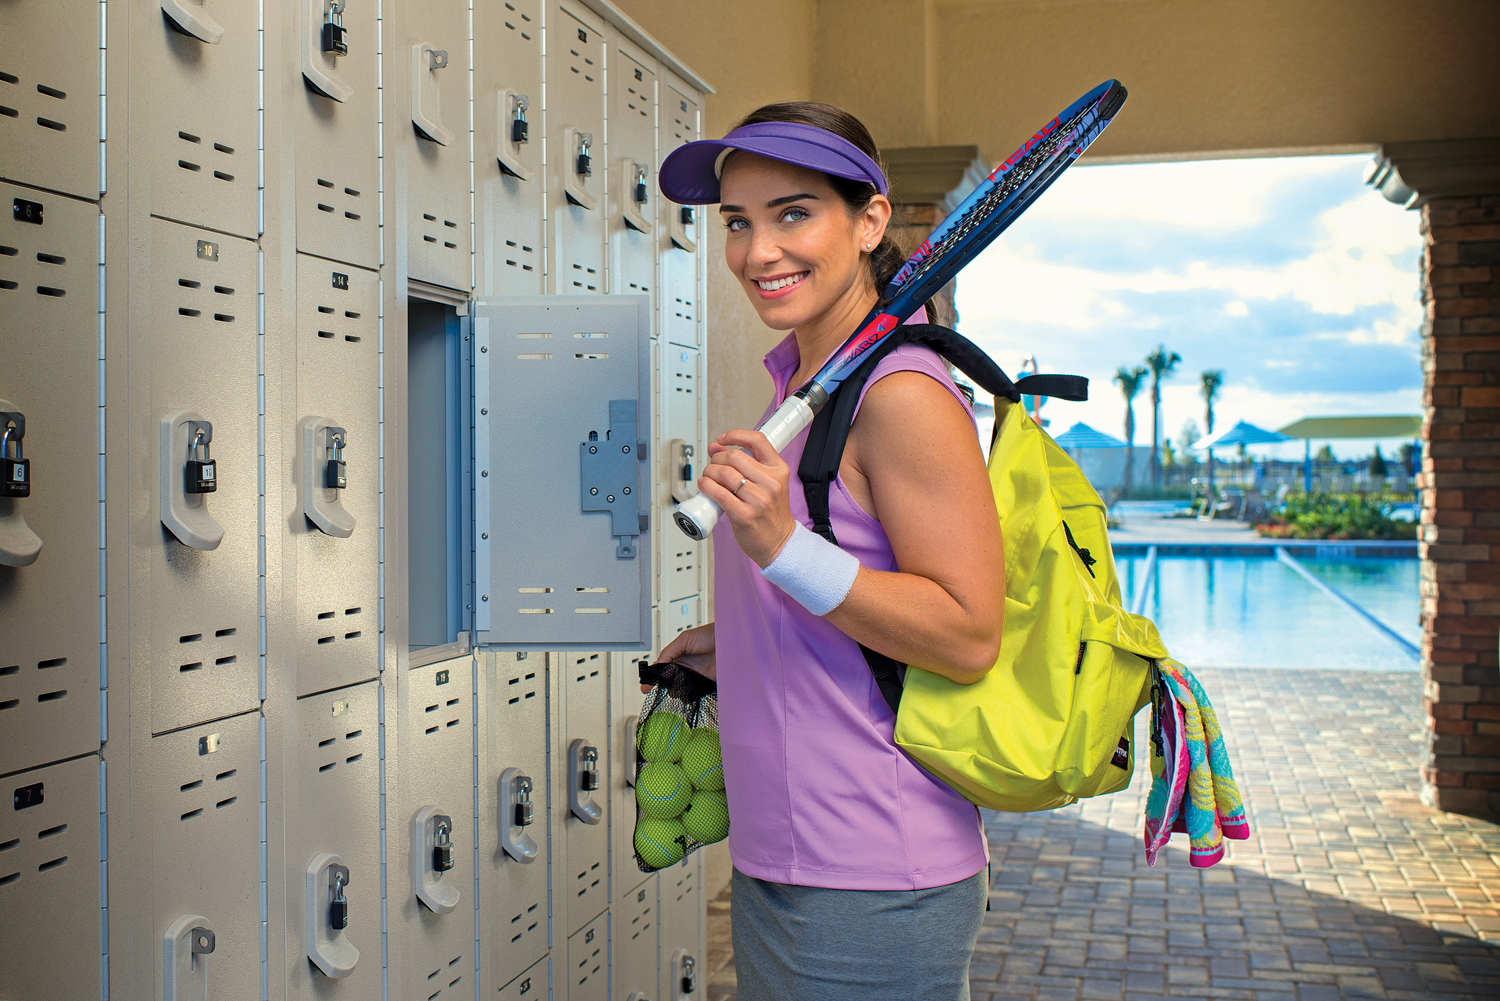 Woman with tennis gear at outdoor lockers.